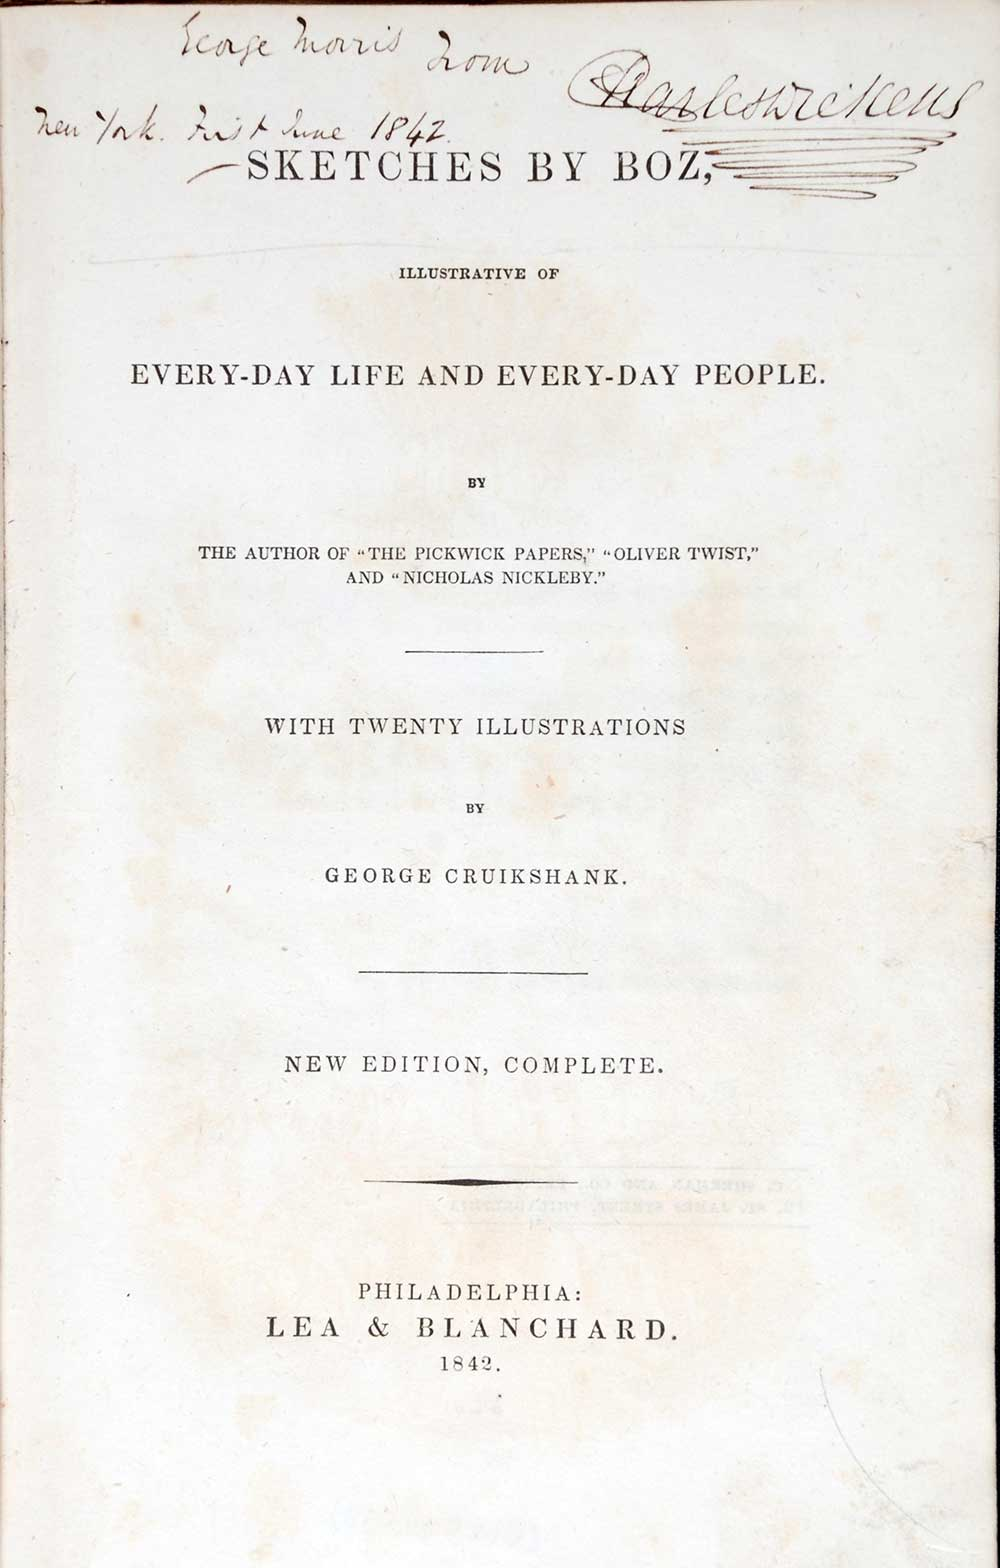 Charles Dickens. <em>Sketches by Boz: illustrative of every-day life and every-day people</em>. New edition. Philadelphia: Lea & Blanchard, 1842.